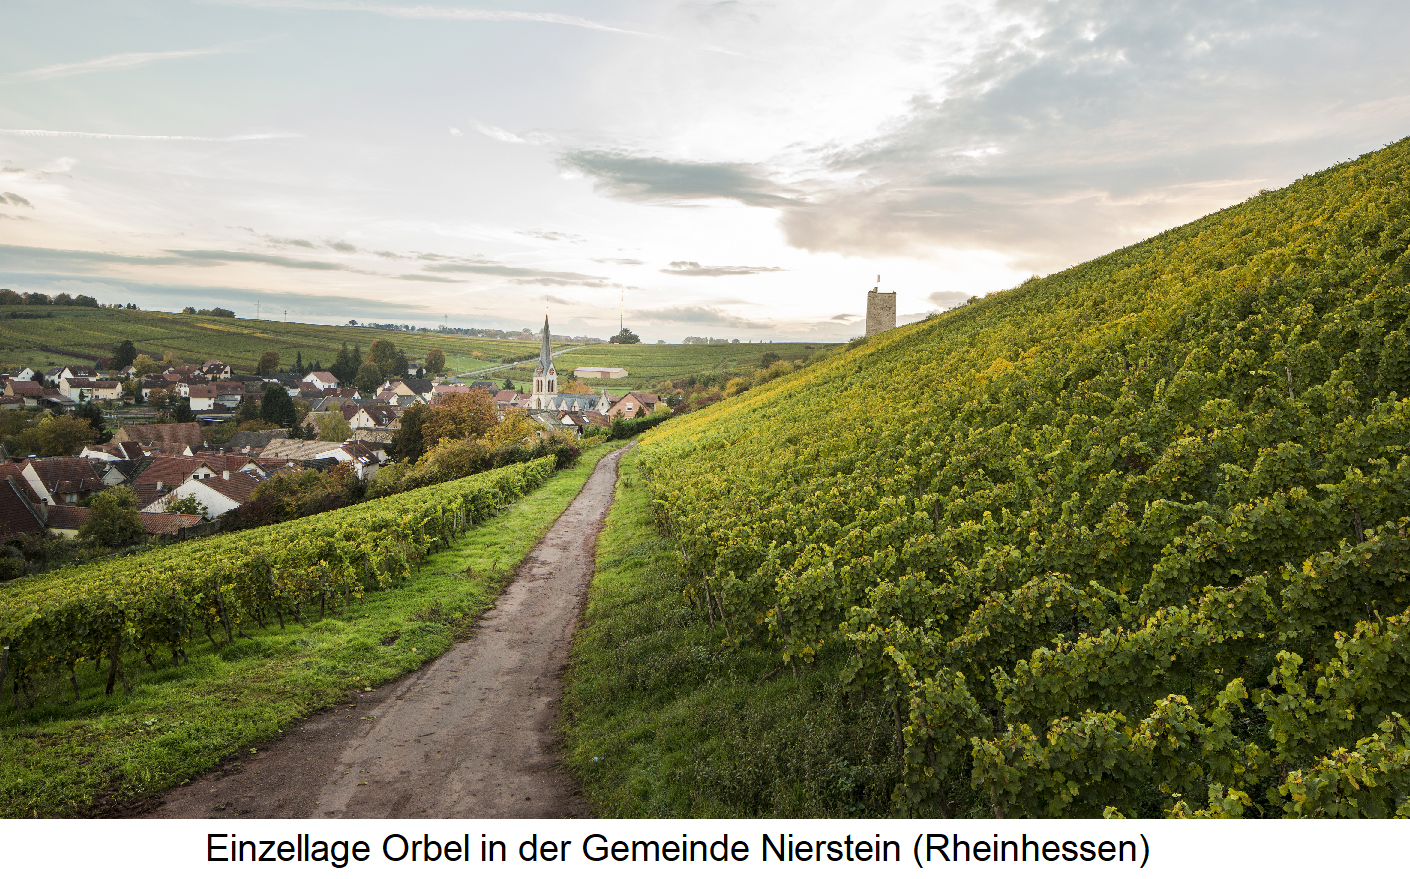 Orbel - vineyards